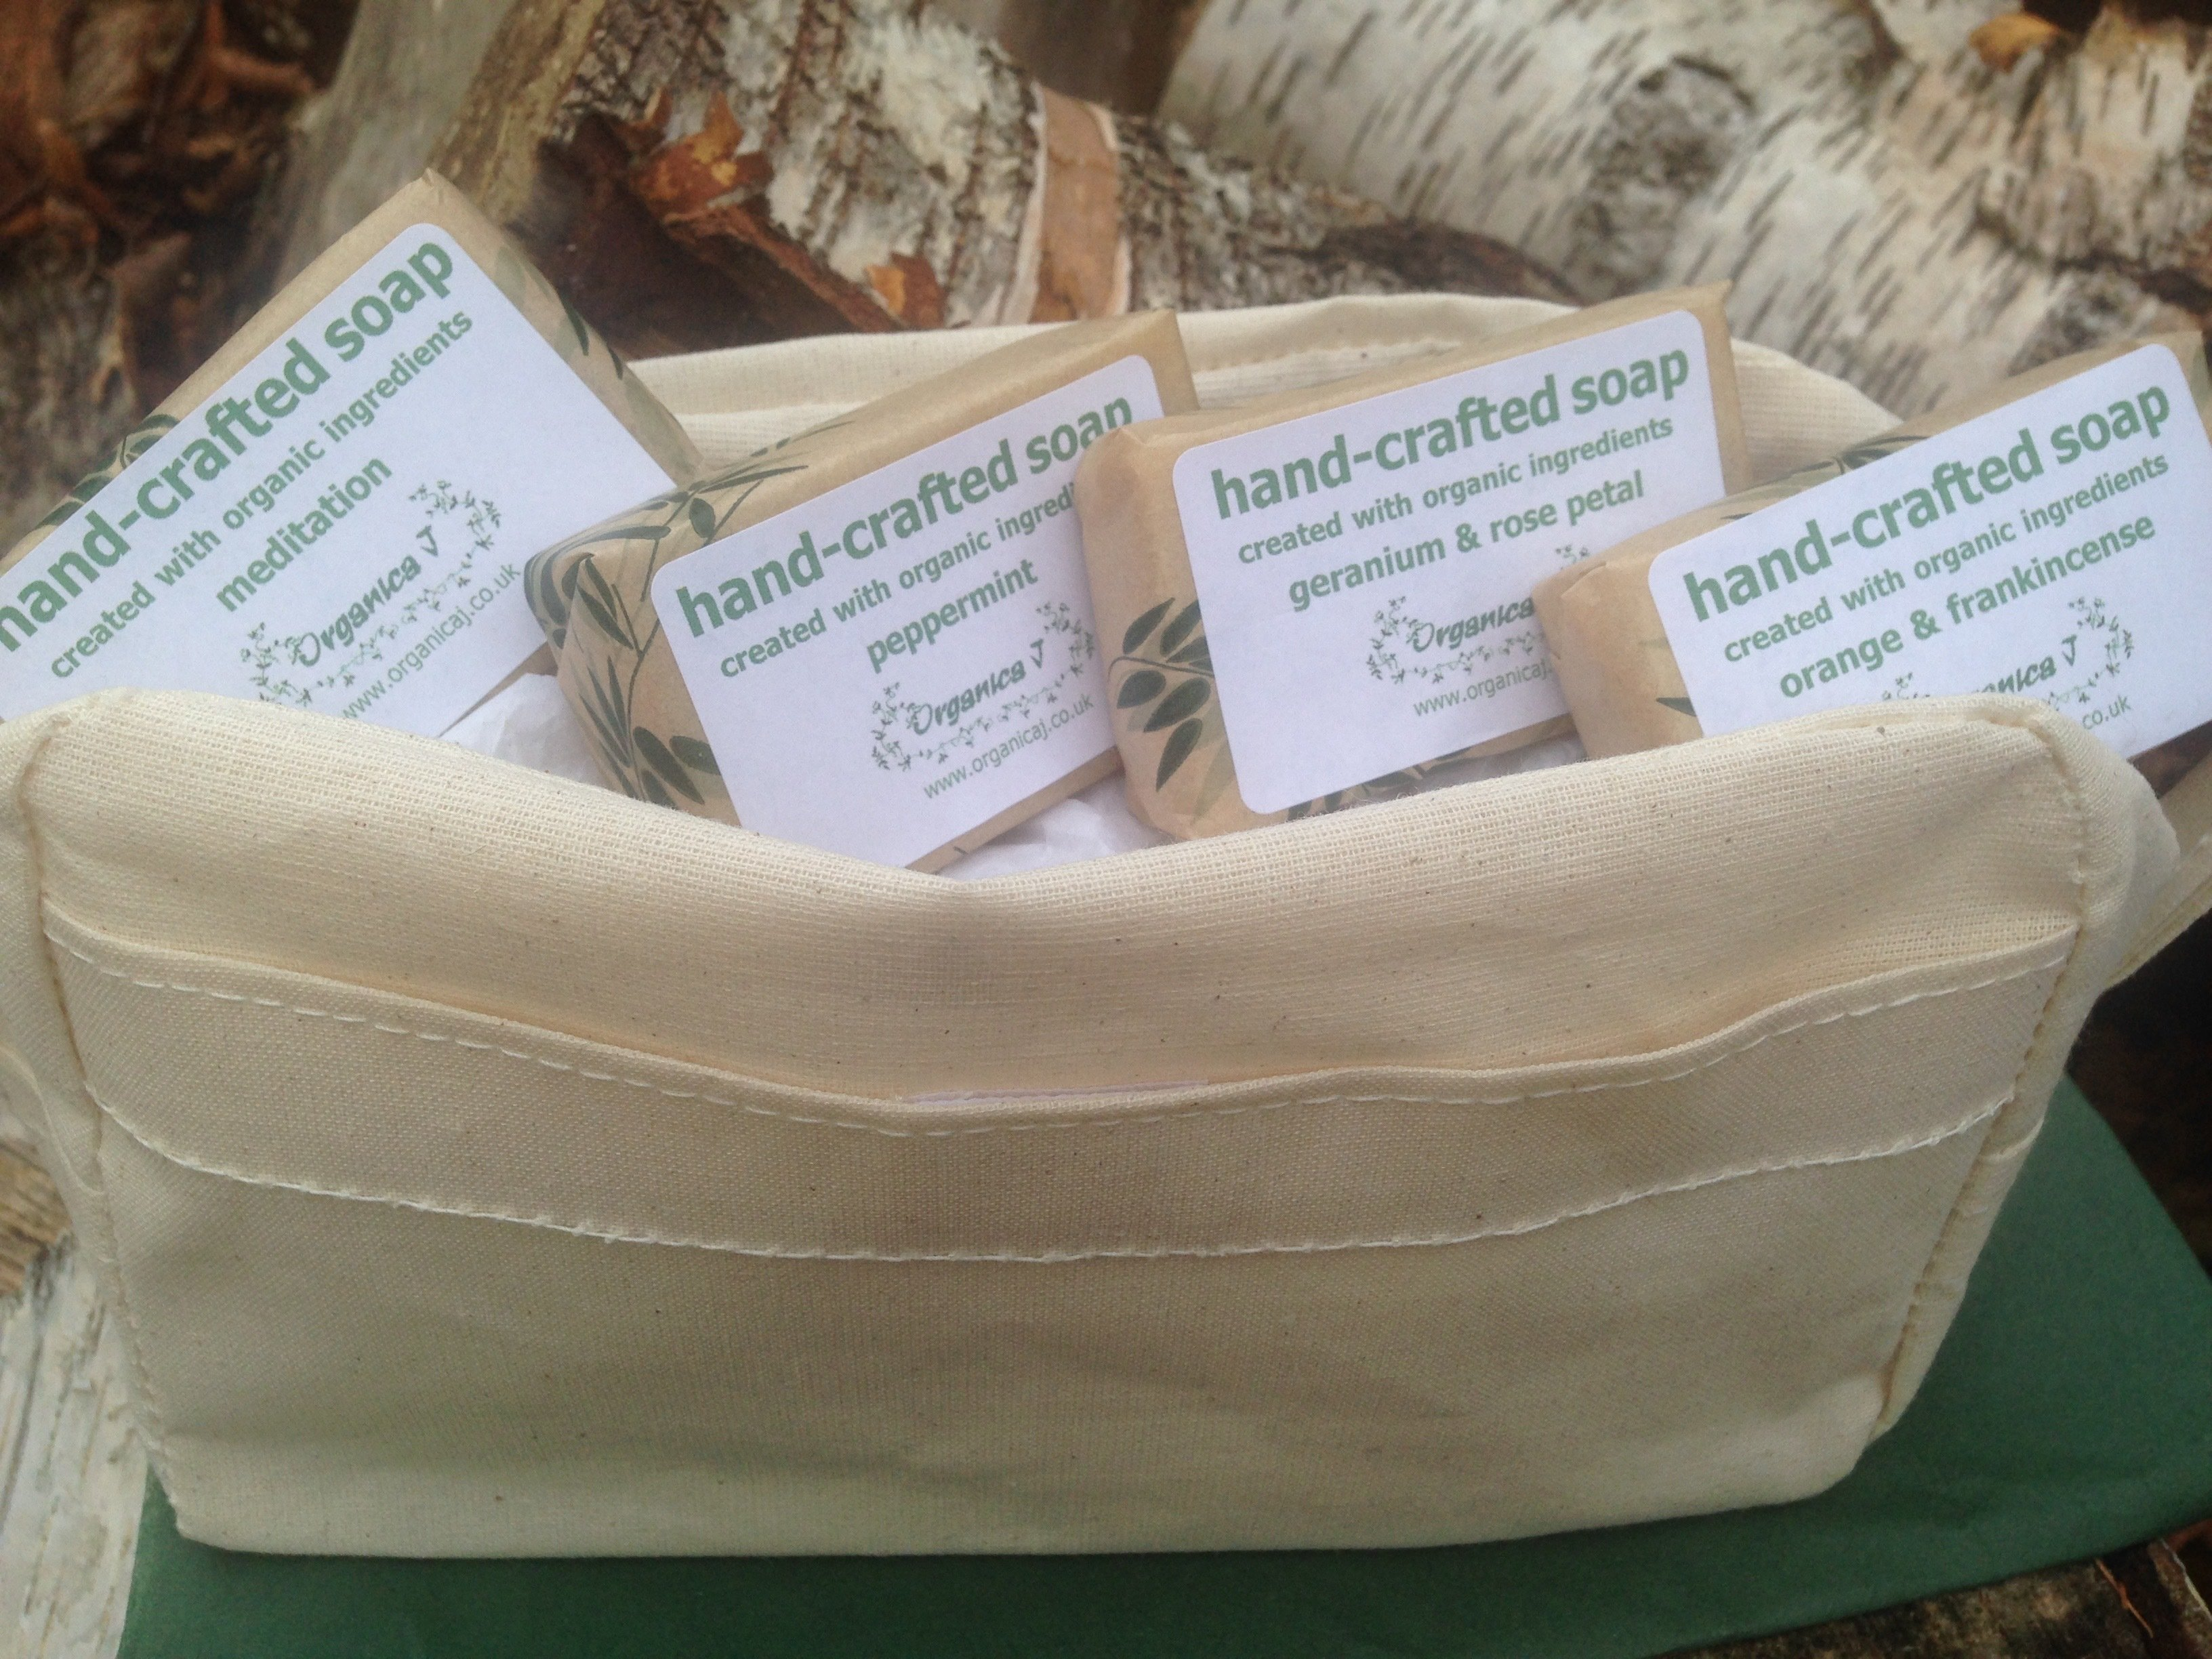 Organic Soaps in A Natural Cotton Toiletry Bag OSTB01